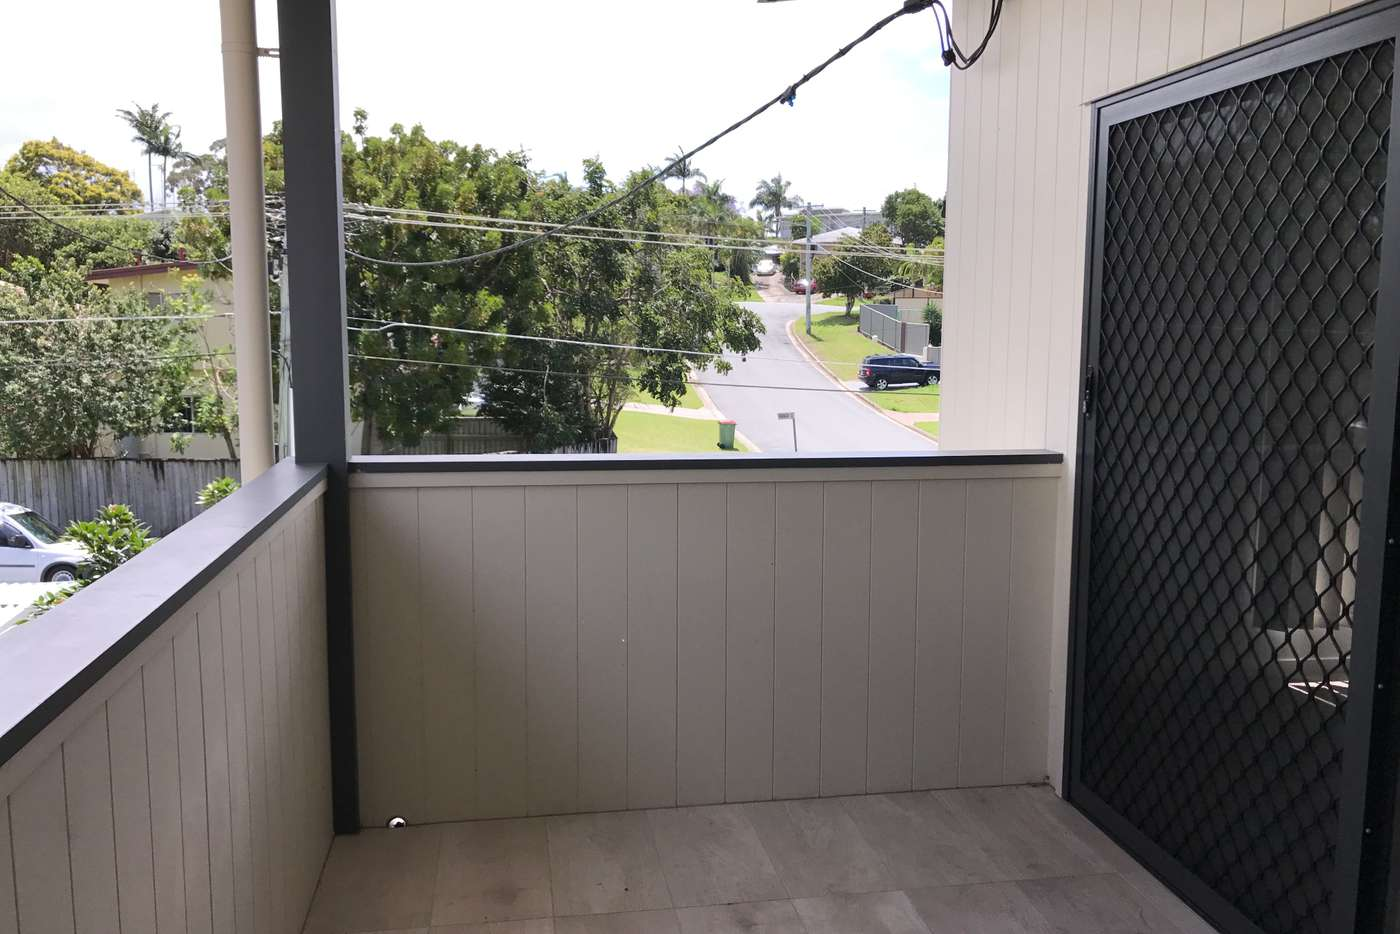 Sixth view of Homely townhouse listing, 2/18 Enid Avenue, Southport QLD 4215